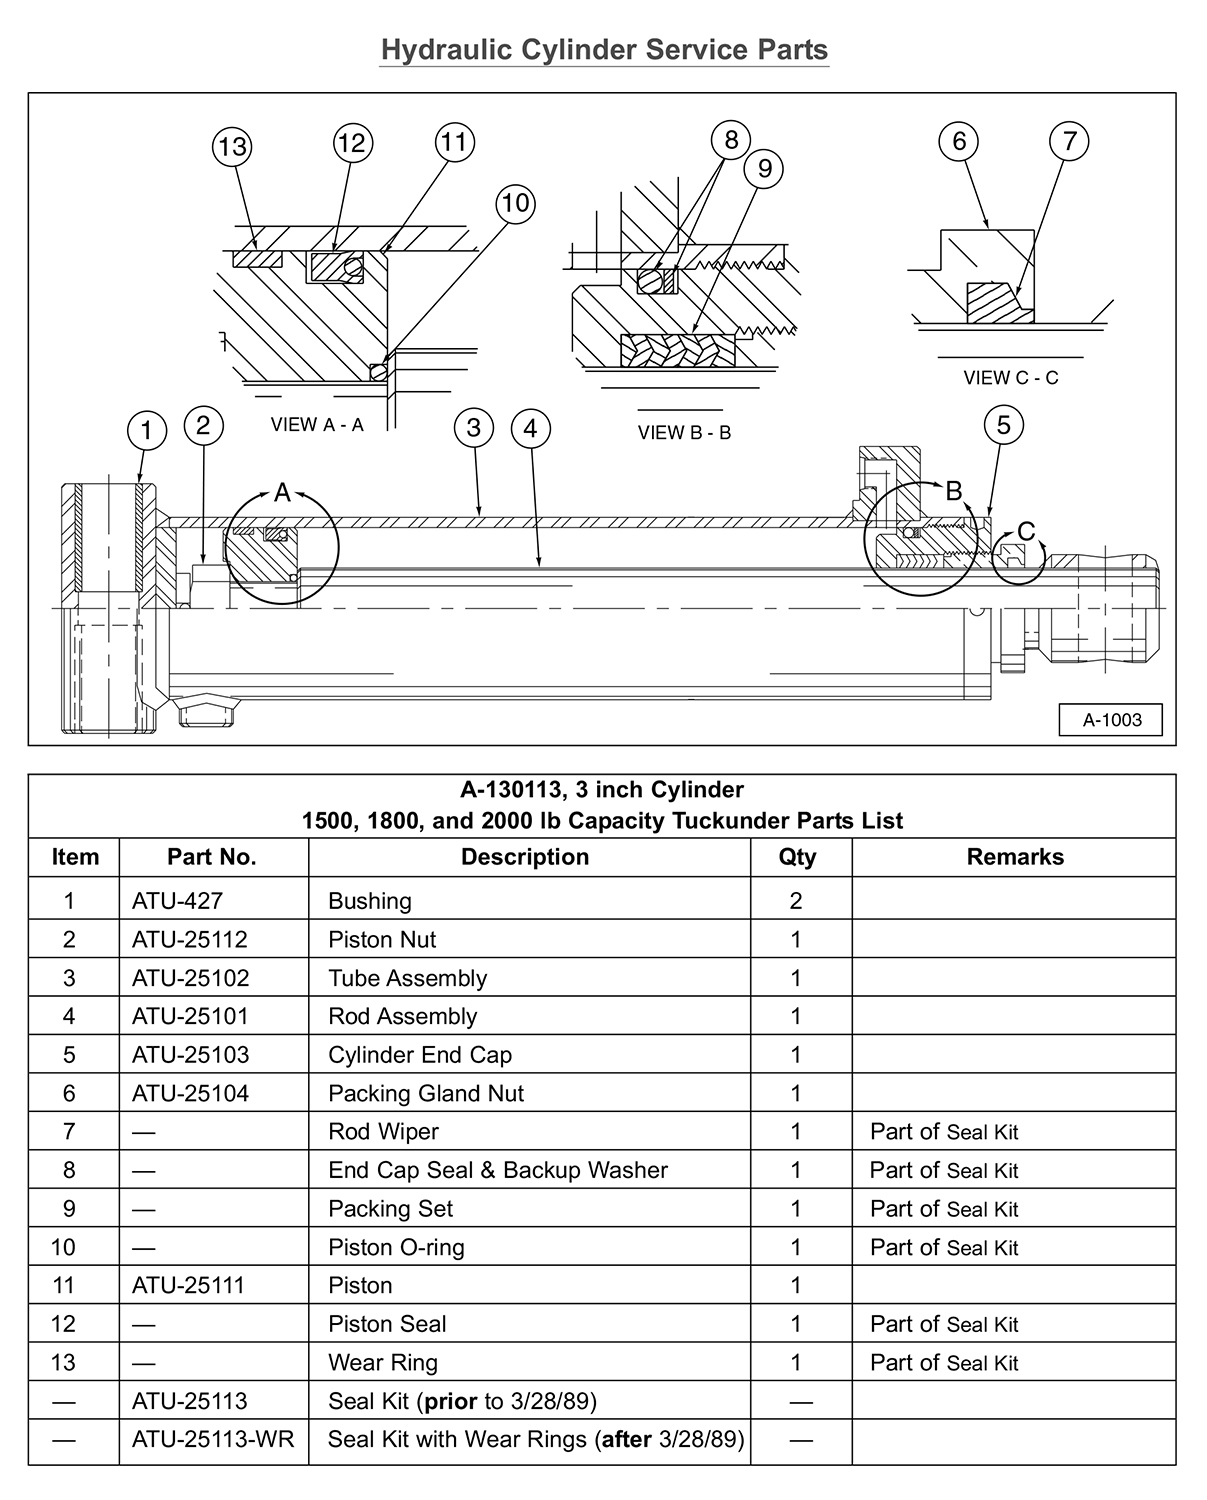 SM Hydraulic Cylinder Service Parts Diagram (For 1500, 1800, and 2000 lb Capacity Liftgates)